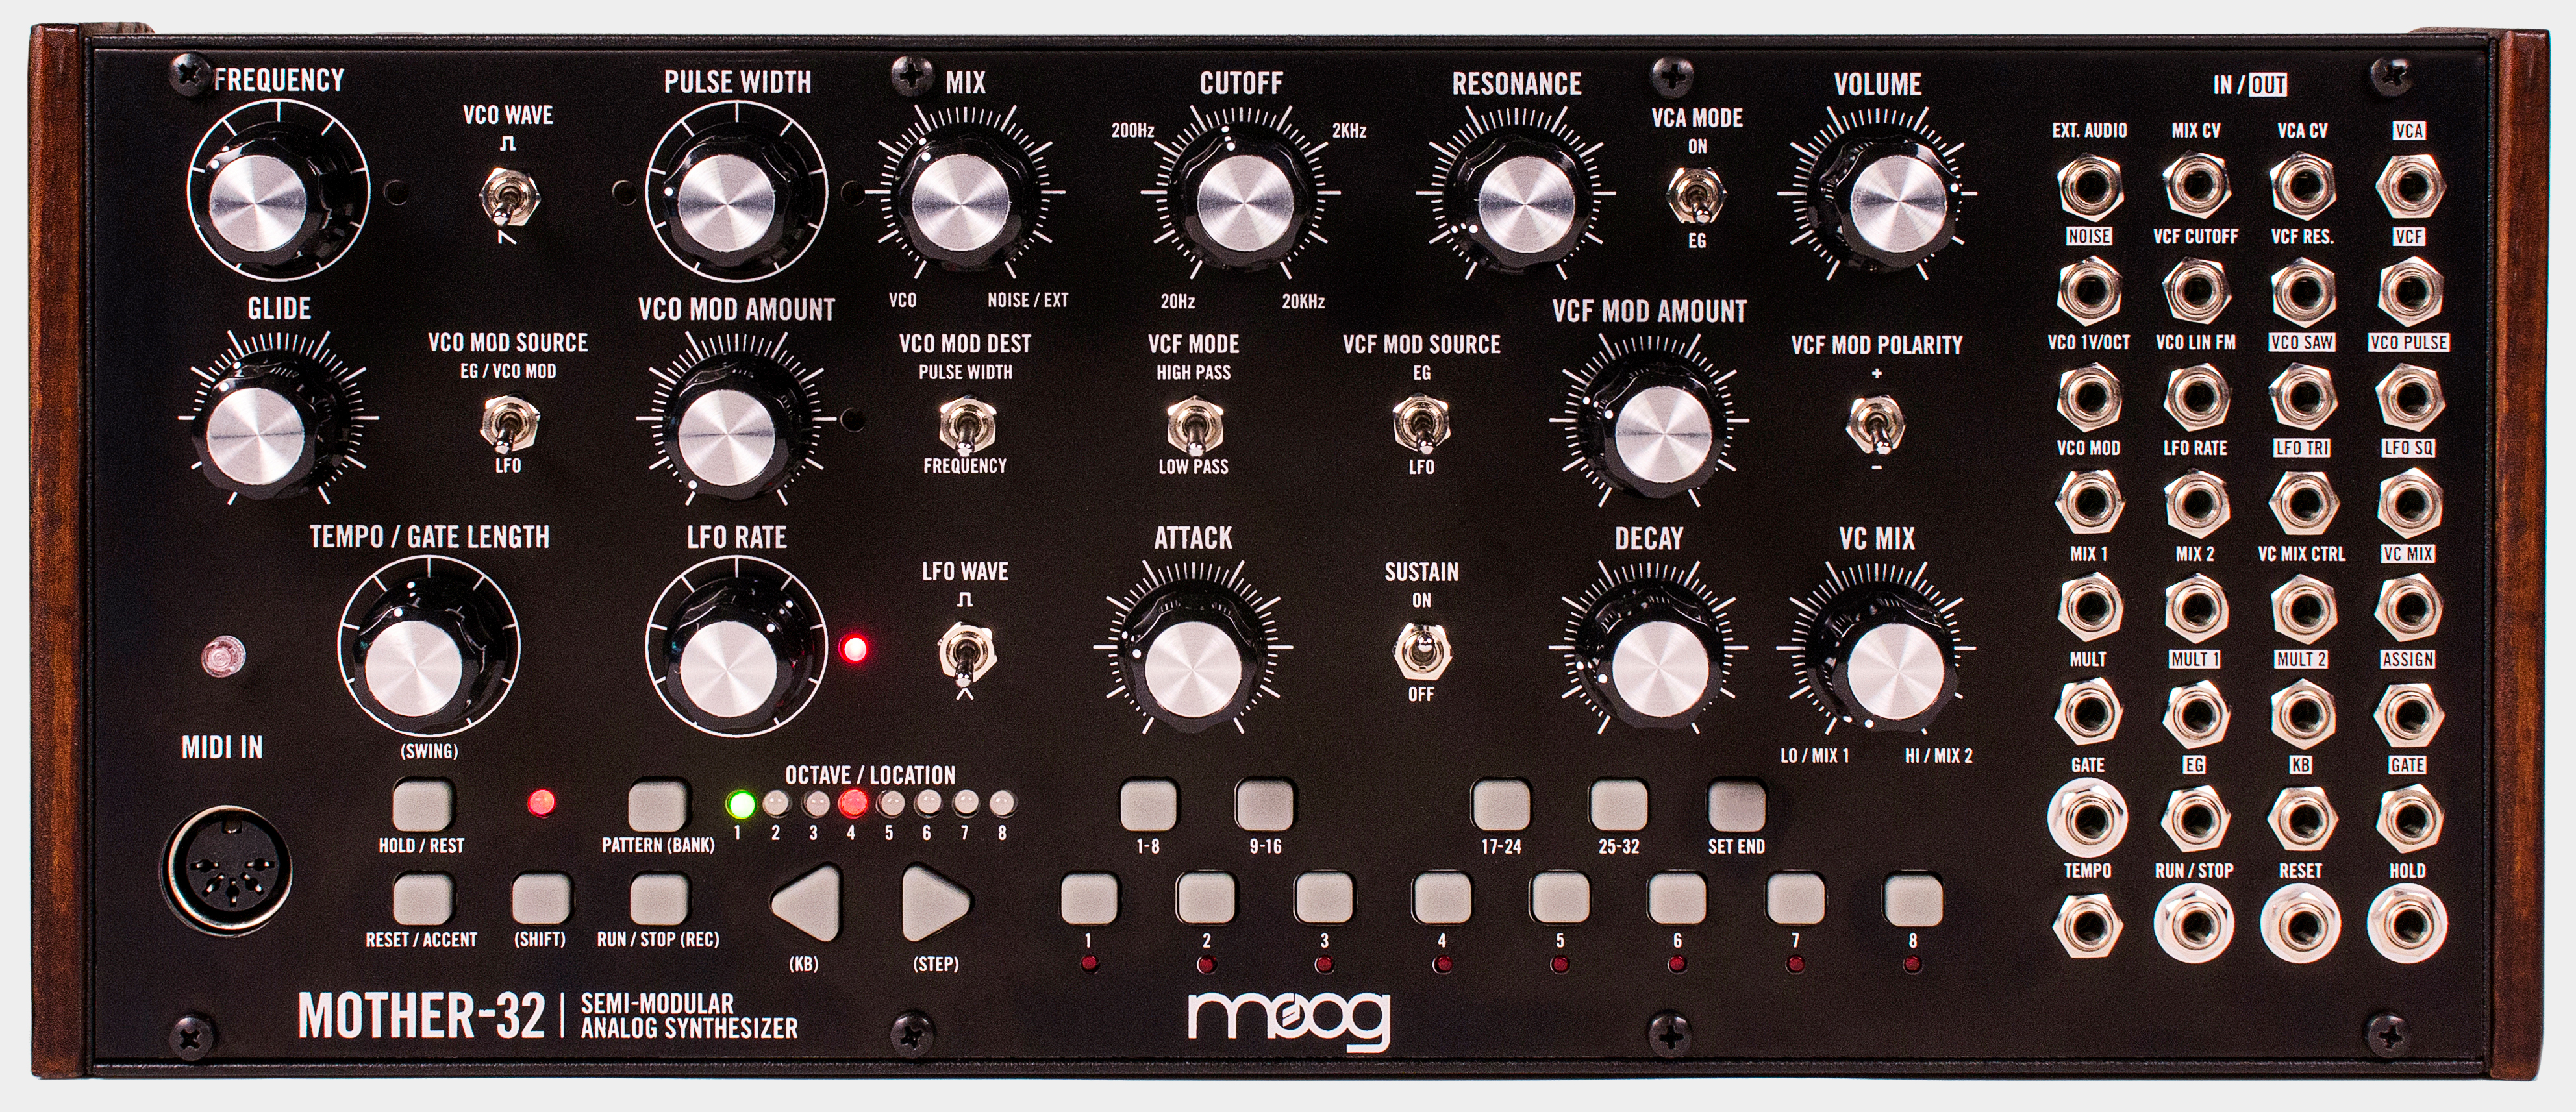 Moog Mother-32 Analog Synthesizer